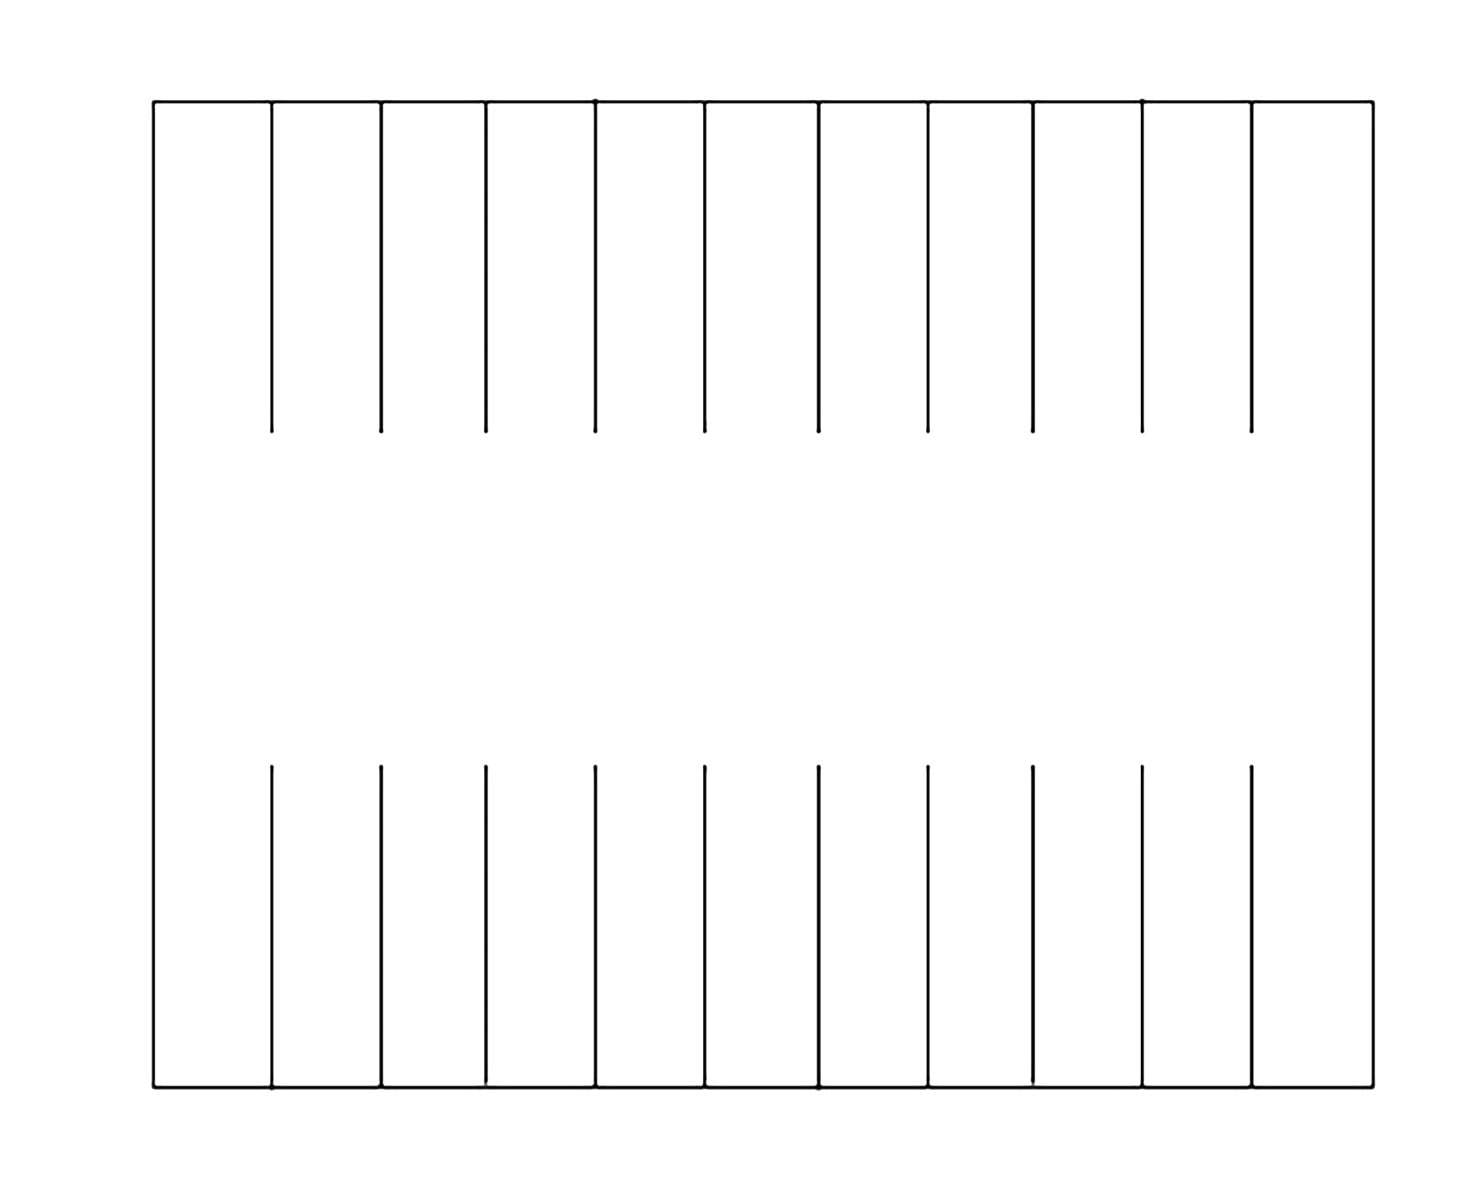 A diagram shows a rectangle with lines drawn on it, as described in the post.